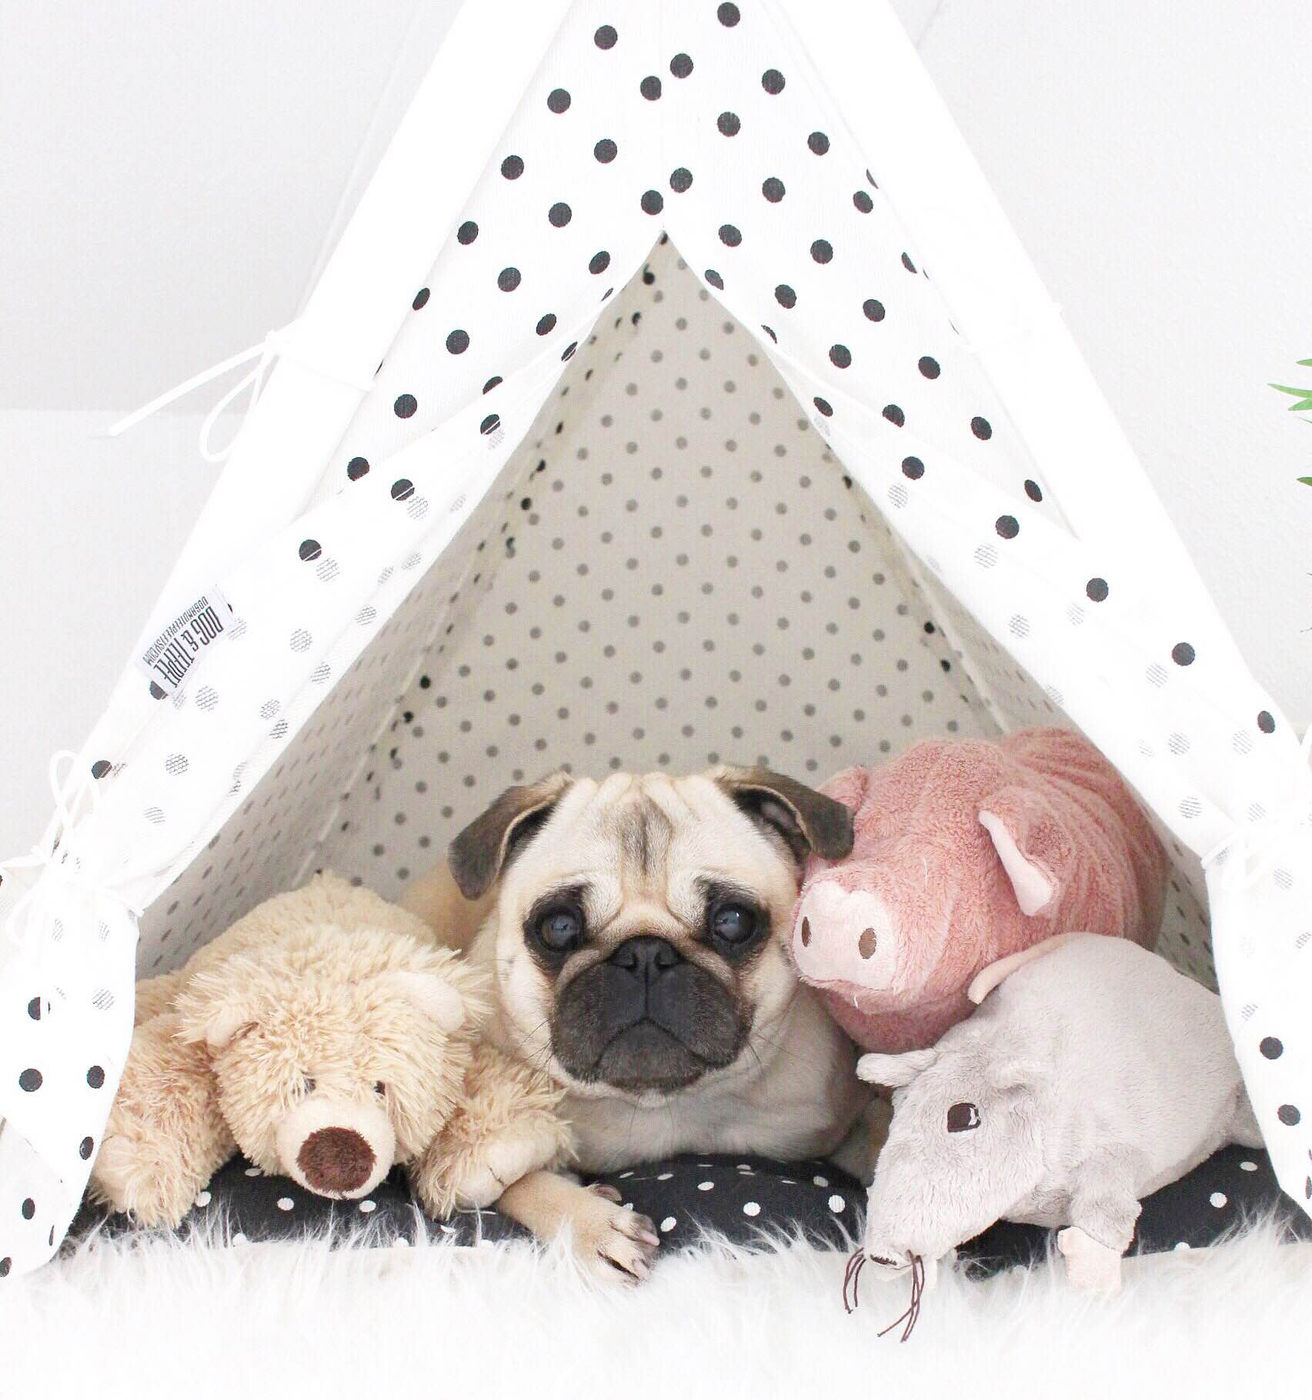 In DogAndTeepee we believe dogs and cats need privacy as much as people do.